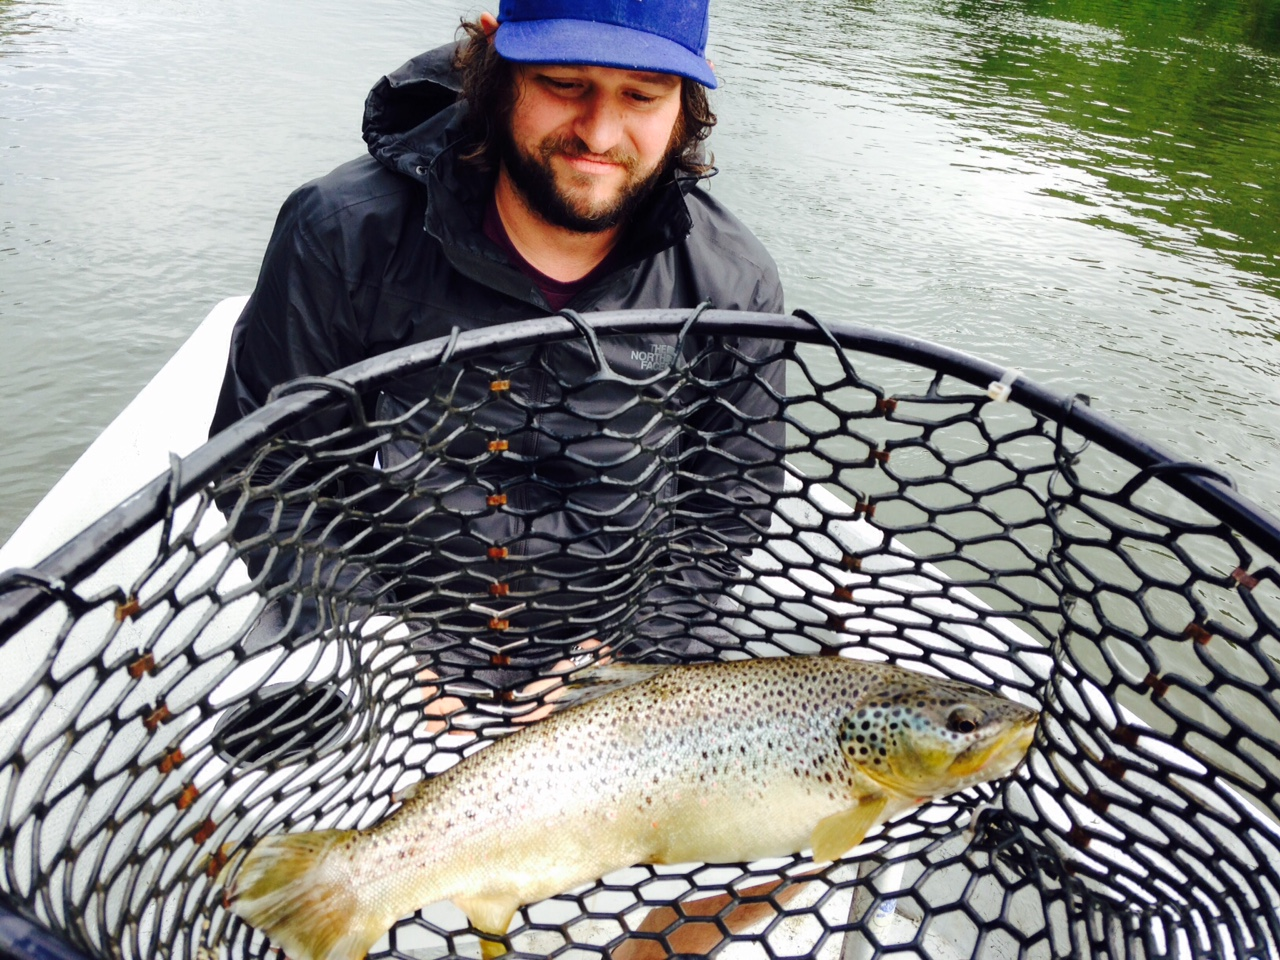 """Ian with a Fat 17"""" Brown trout in the net!"""